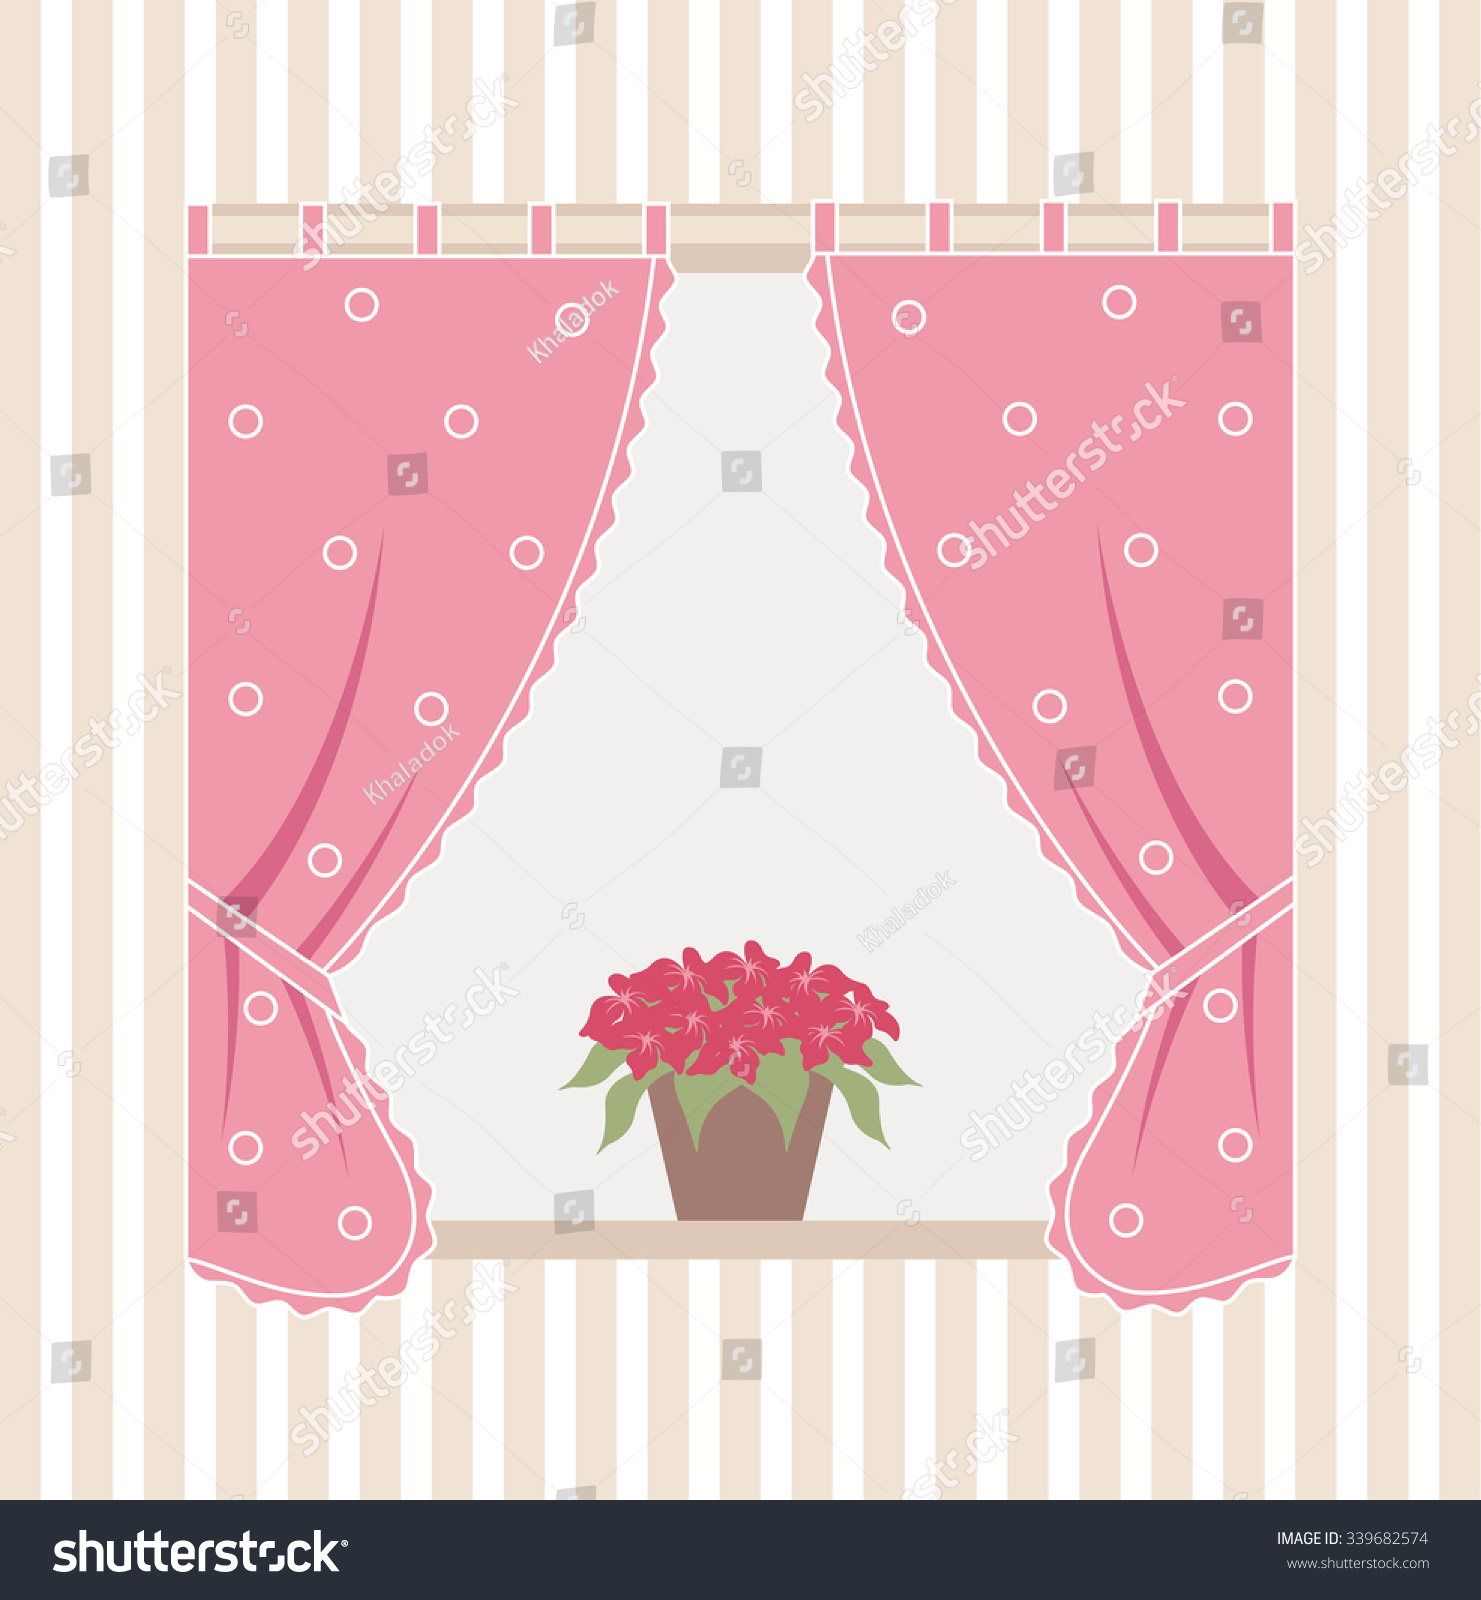 Inside house windows with curtains - Illustration Of The Window Inside The House With Curtains And Flowers On The Windowsill